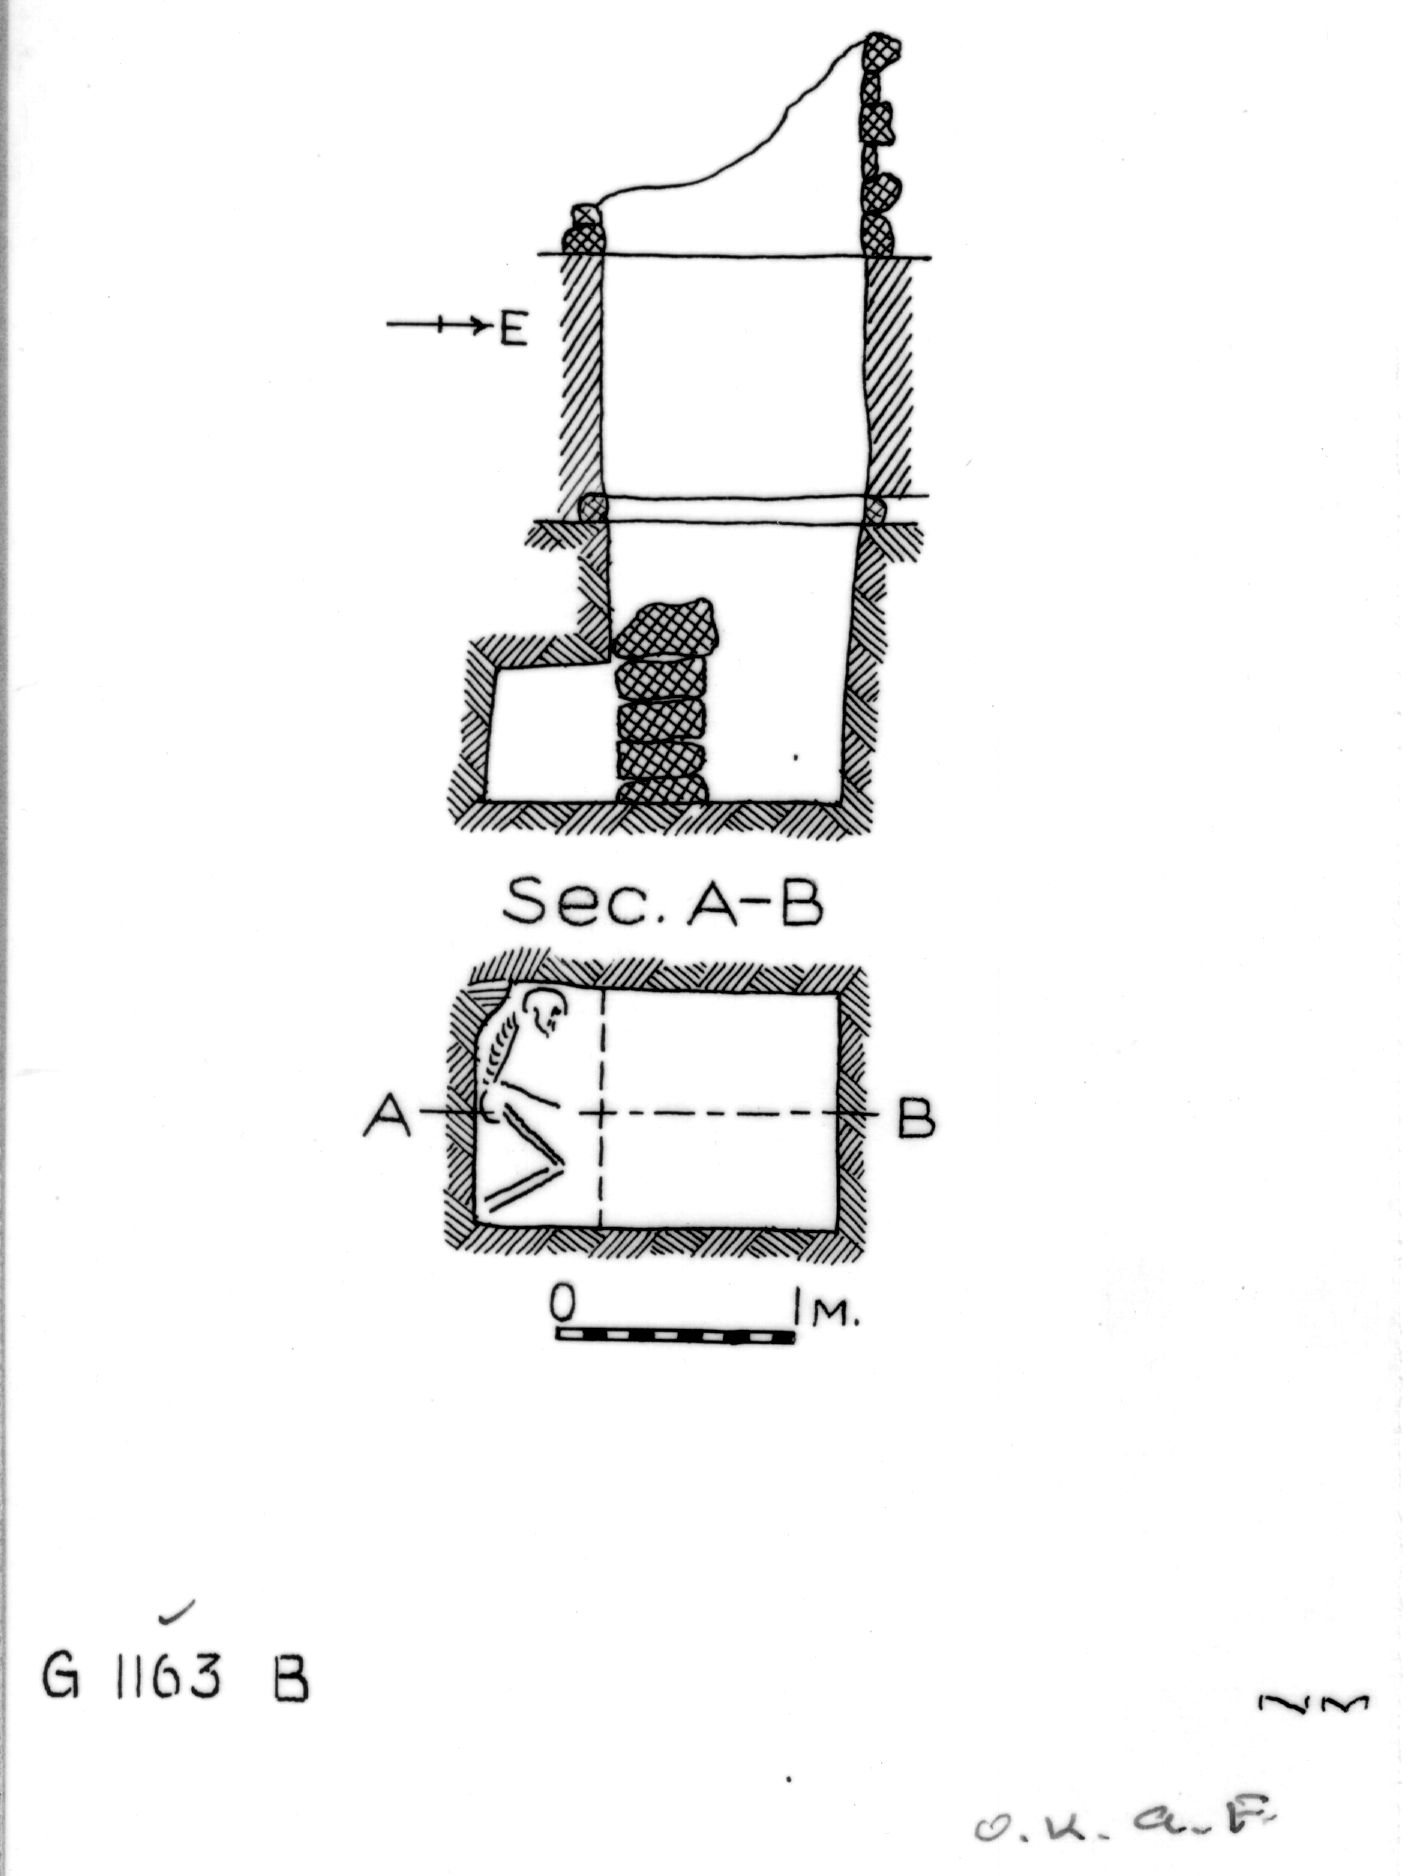 Maps and plans: G 1163+1166: G 1163, Shaft B